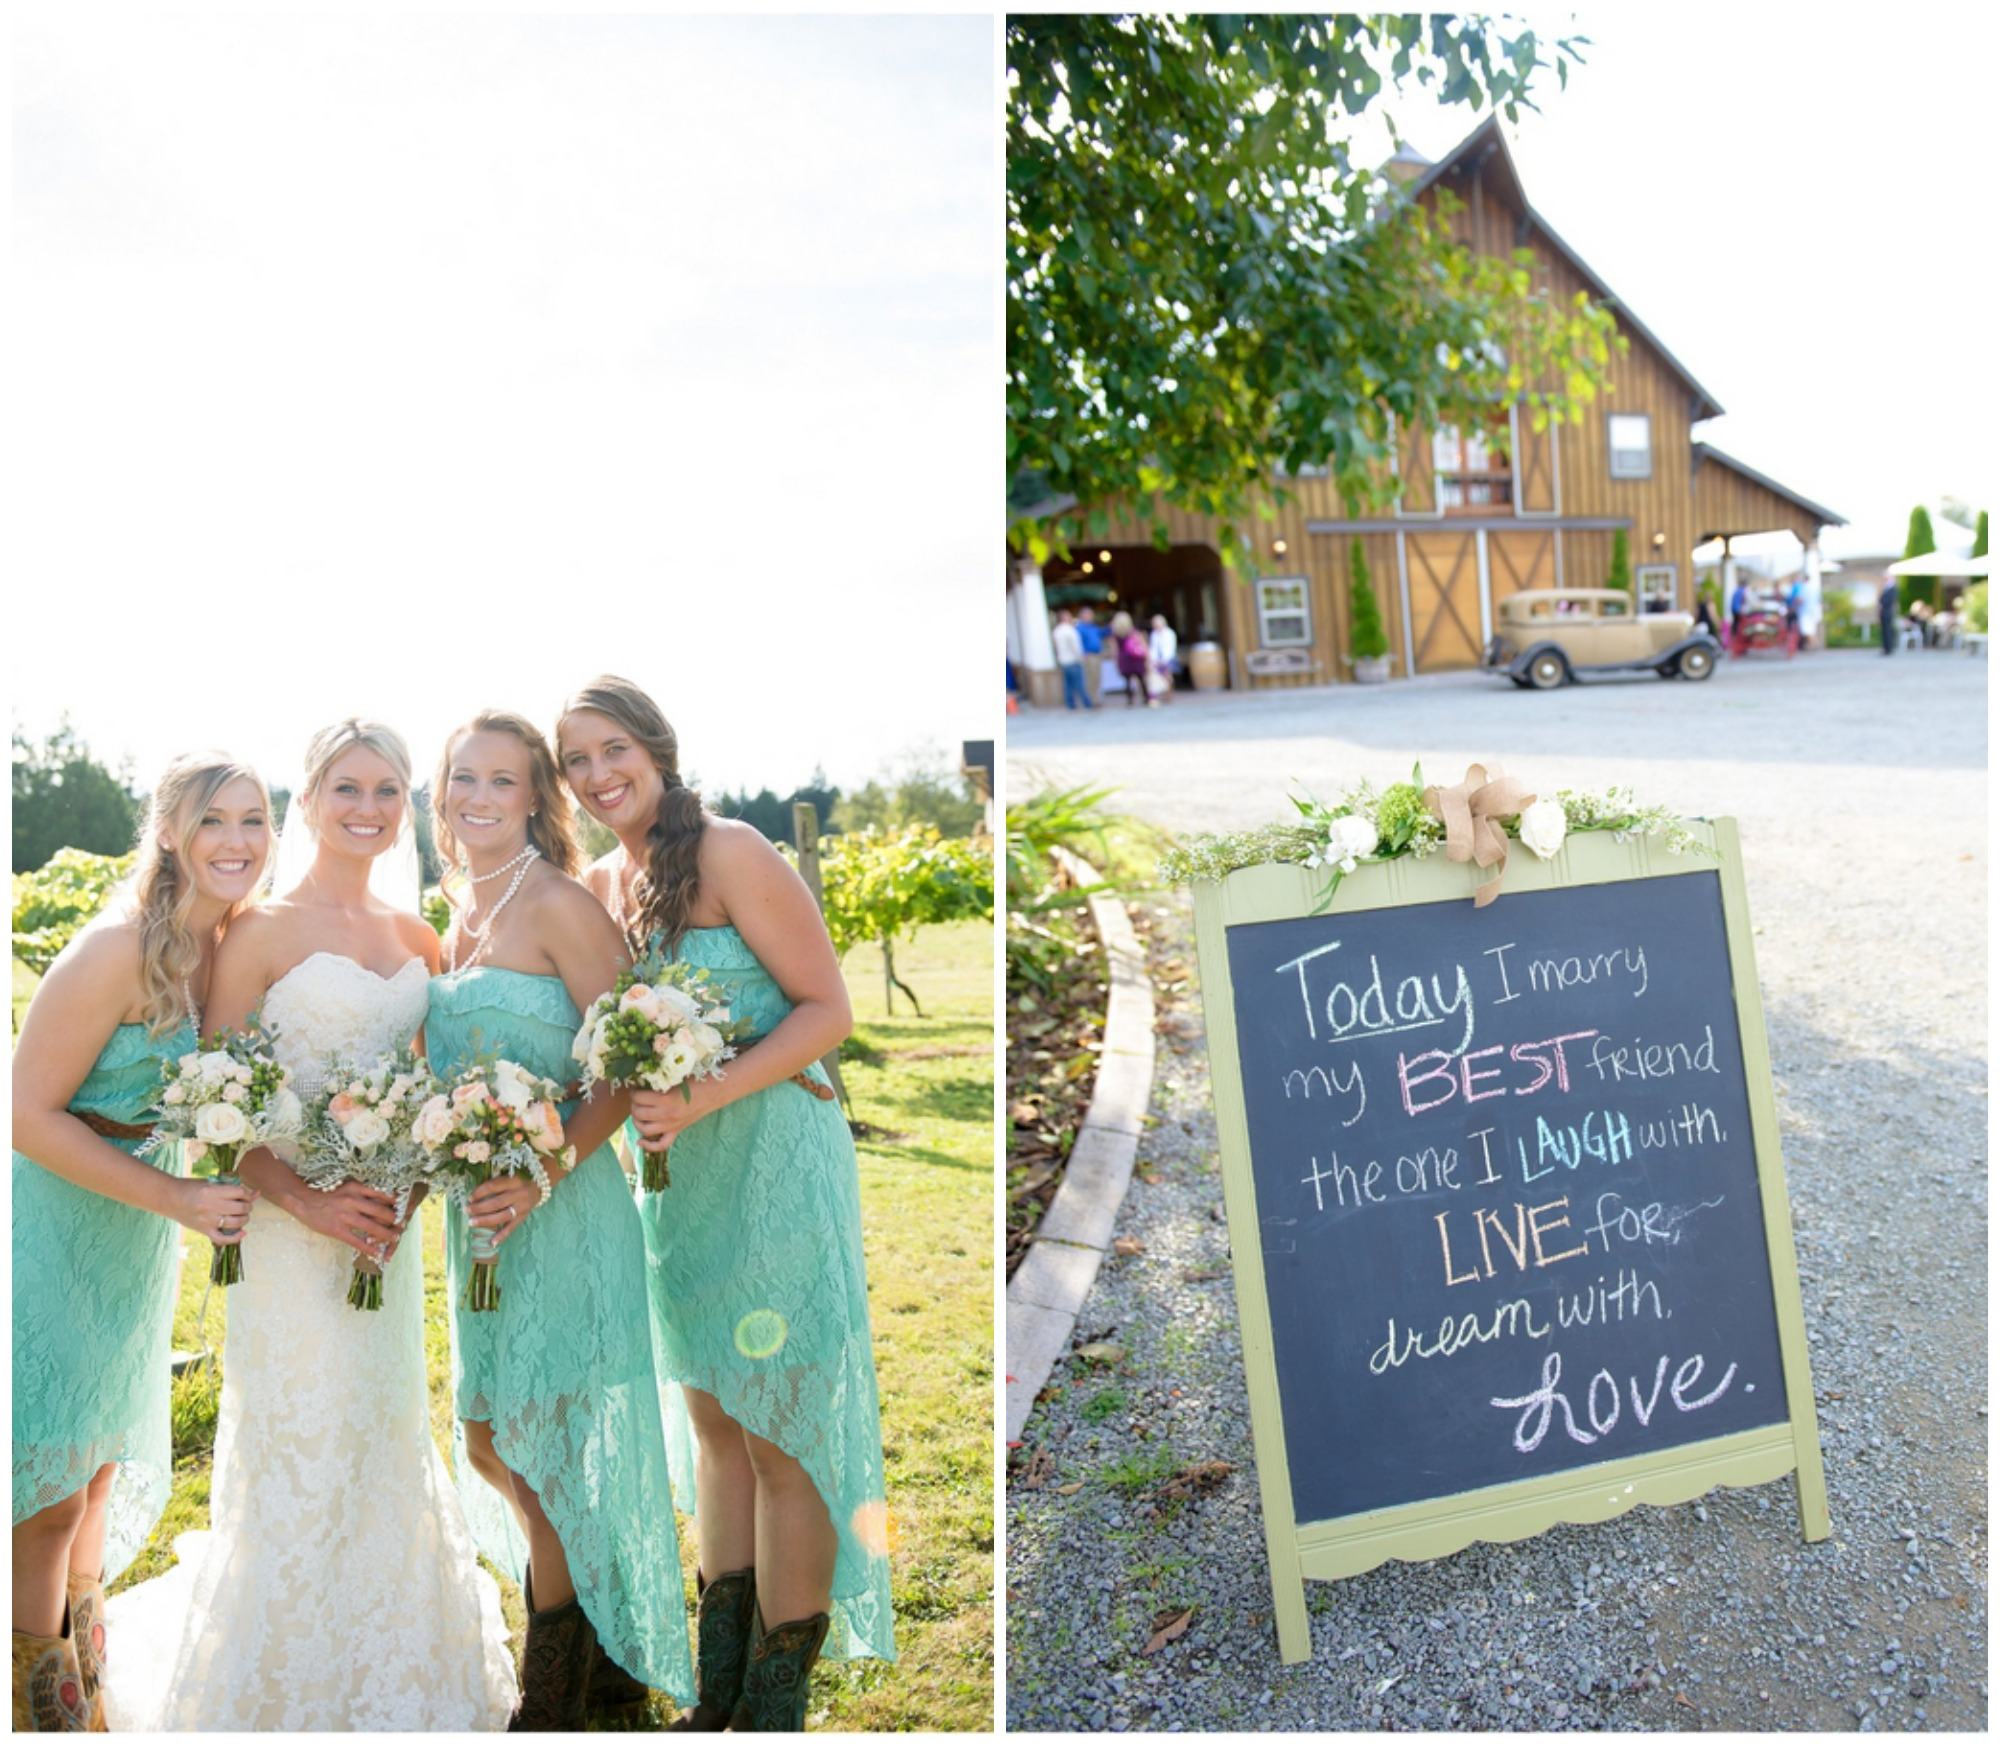 Country Wedding On A Budget - Rustic Wedding Chic - photo#29